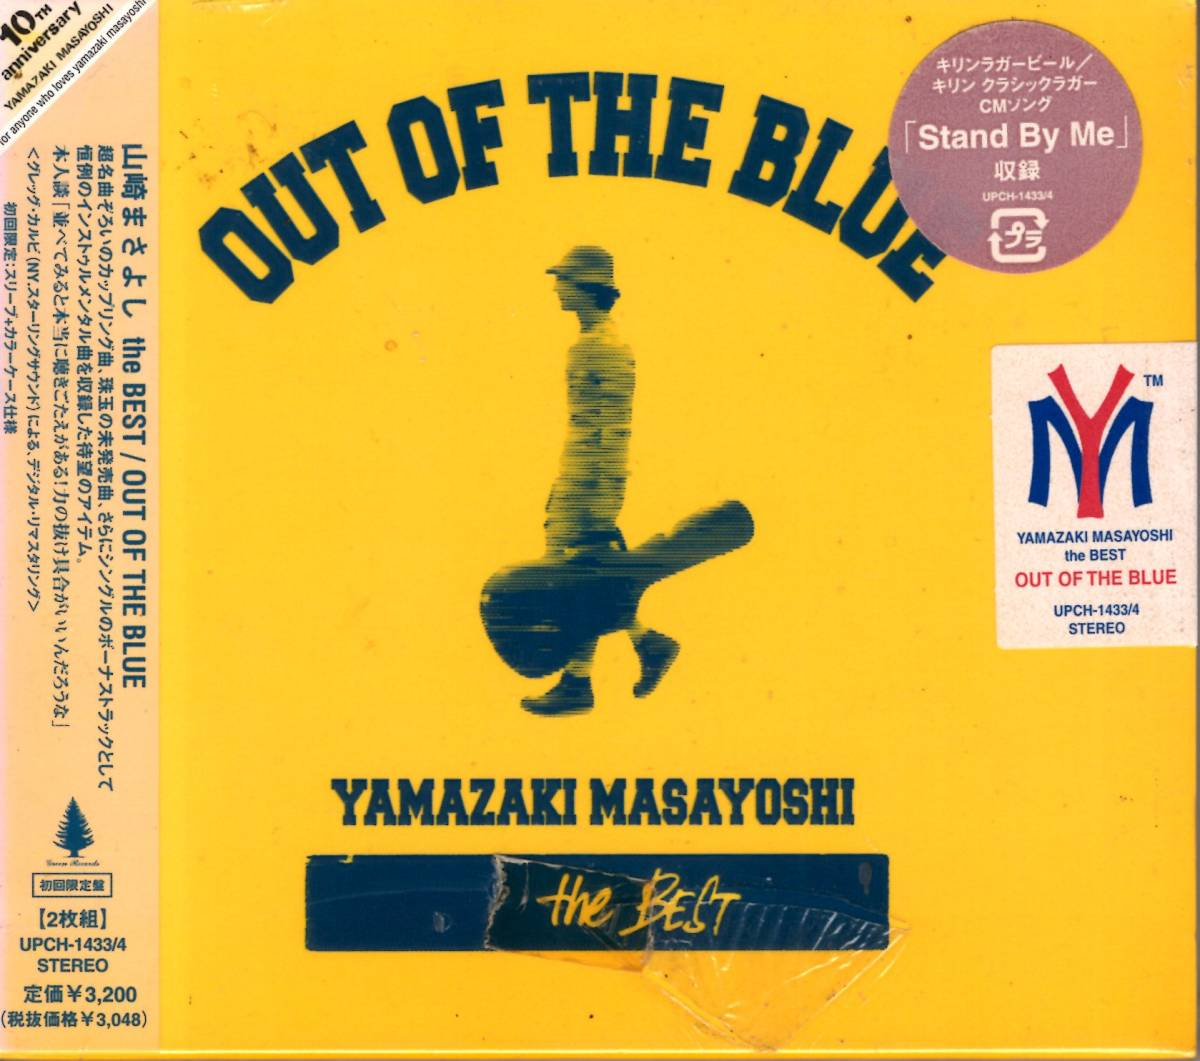 OUT OF THE BLUE ~B side集 山崎まさよし 10周年記念企画ベストのシングルBサイド集!即興ギターのインストのほかレア音源も聴ける!_画像2